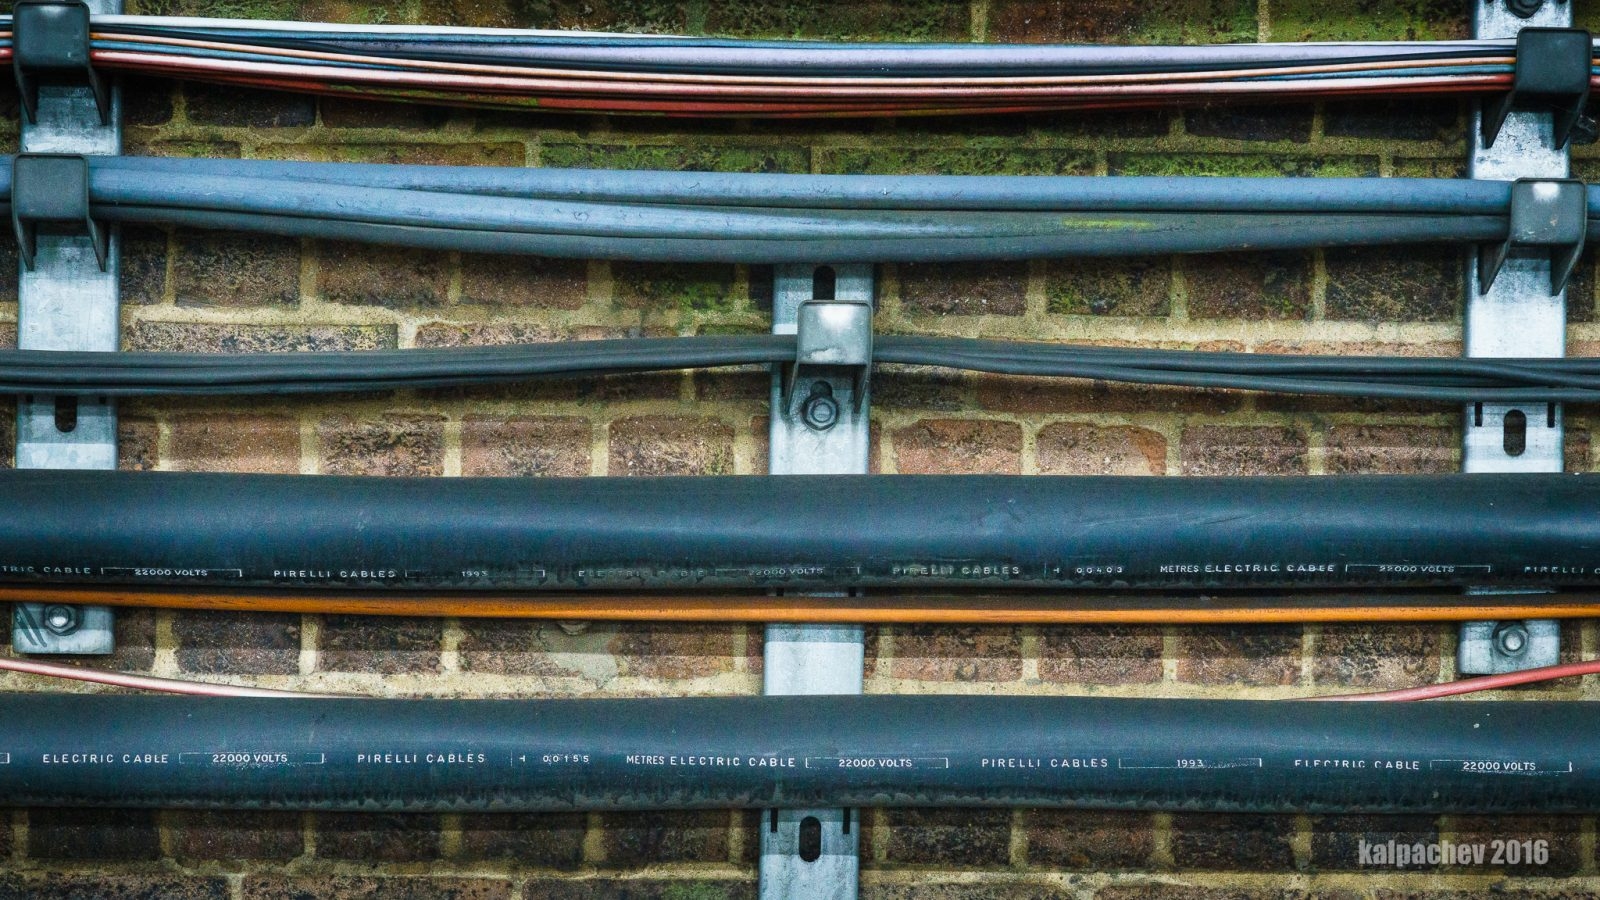 Pirelli cables at London Underground